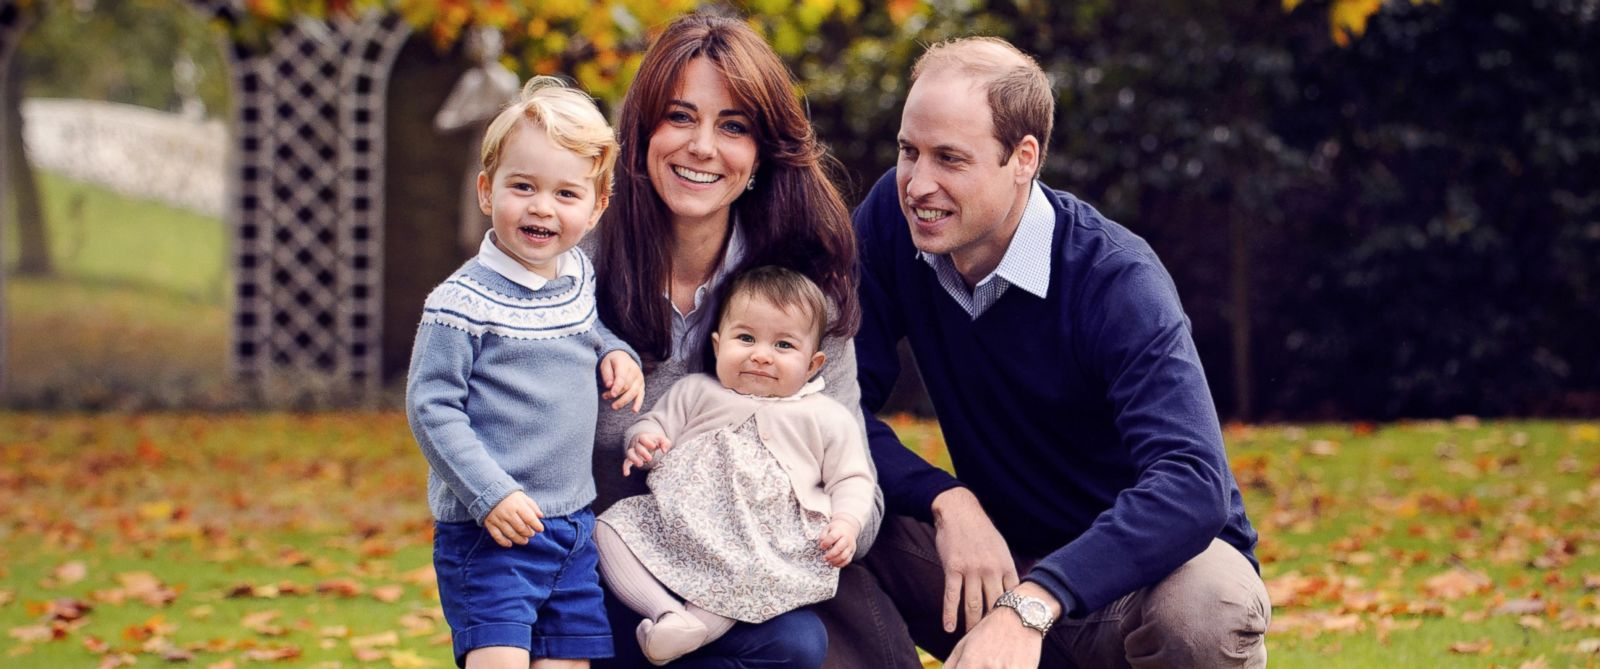 PHOTO:This photo released by Kensington Palace on Dec. 18, 2015 shows The Duke and Duchess of Cambridge with their two children, Prince George and Princess Charlotte, in a photograph taken late October 2015 at Kensington Palace in London.